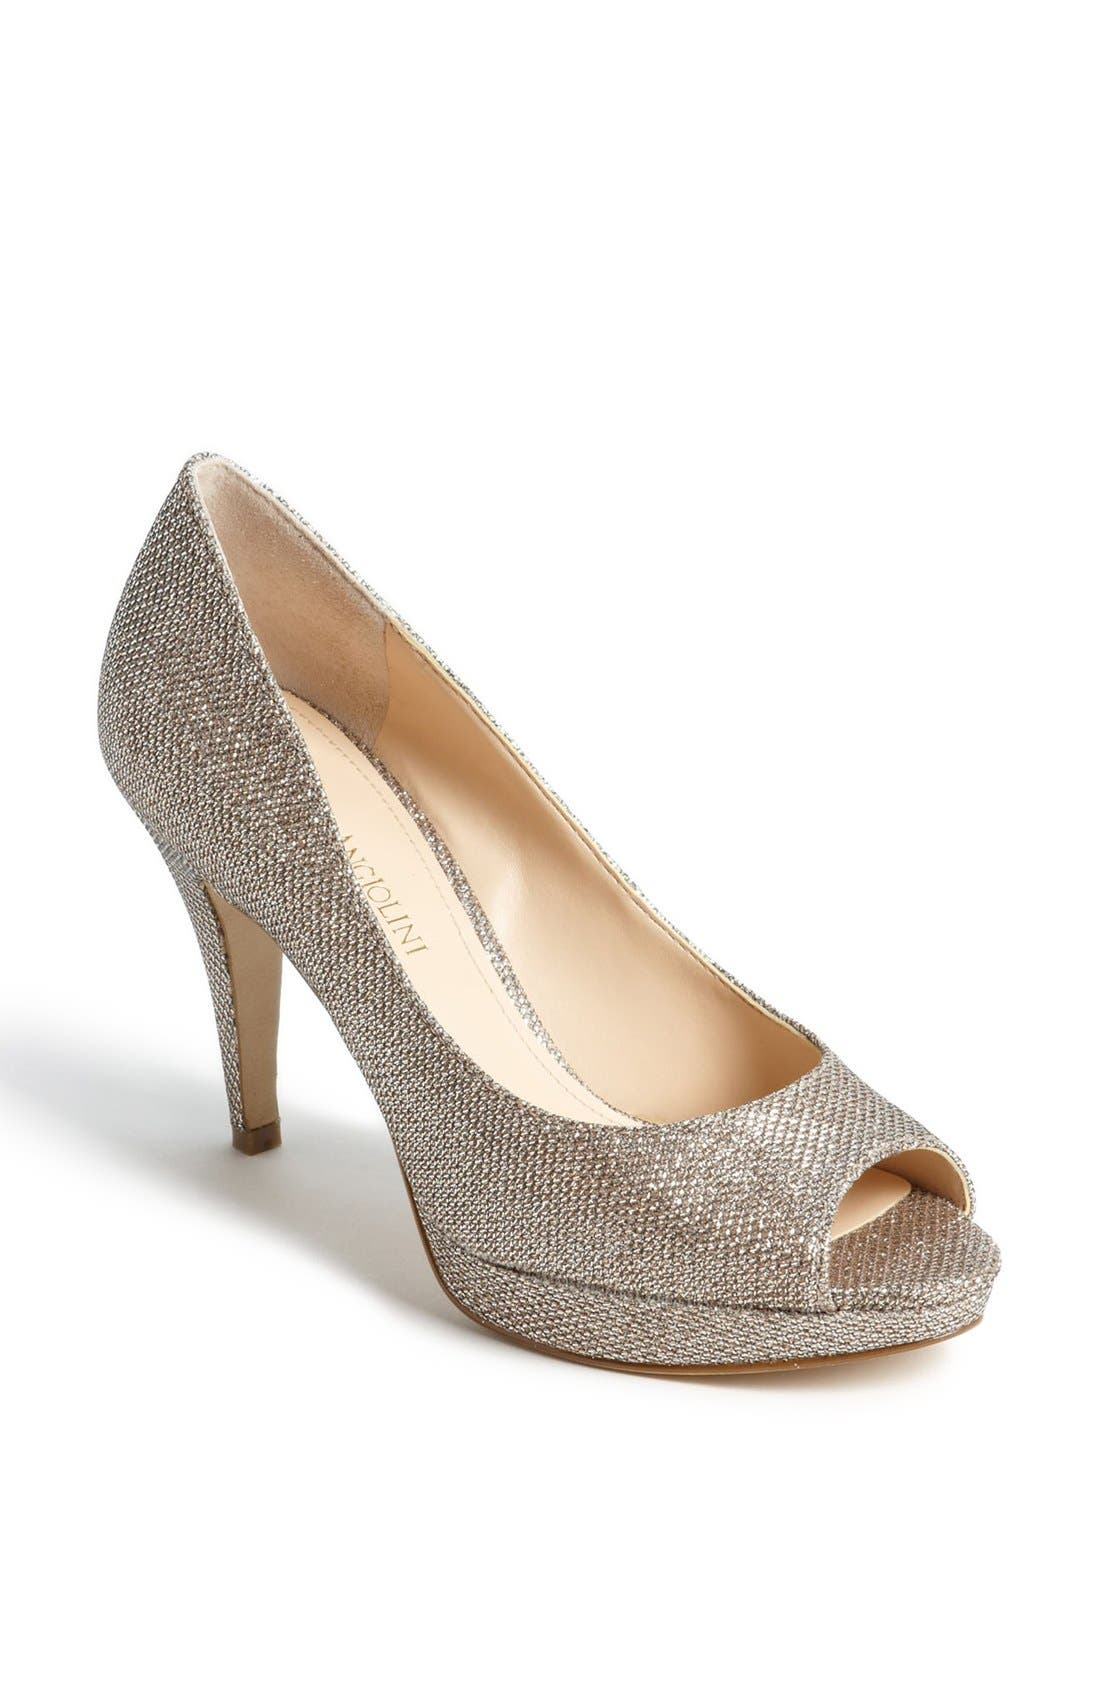 Alternate Image 1 Selected - Enzo Angiolini 'Demario' Pump (Nordstrom Exclusive)